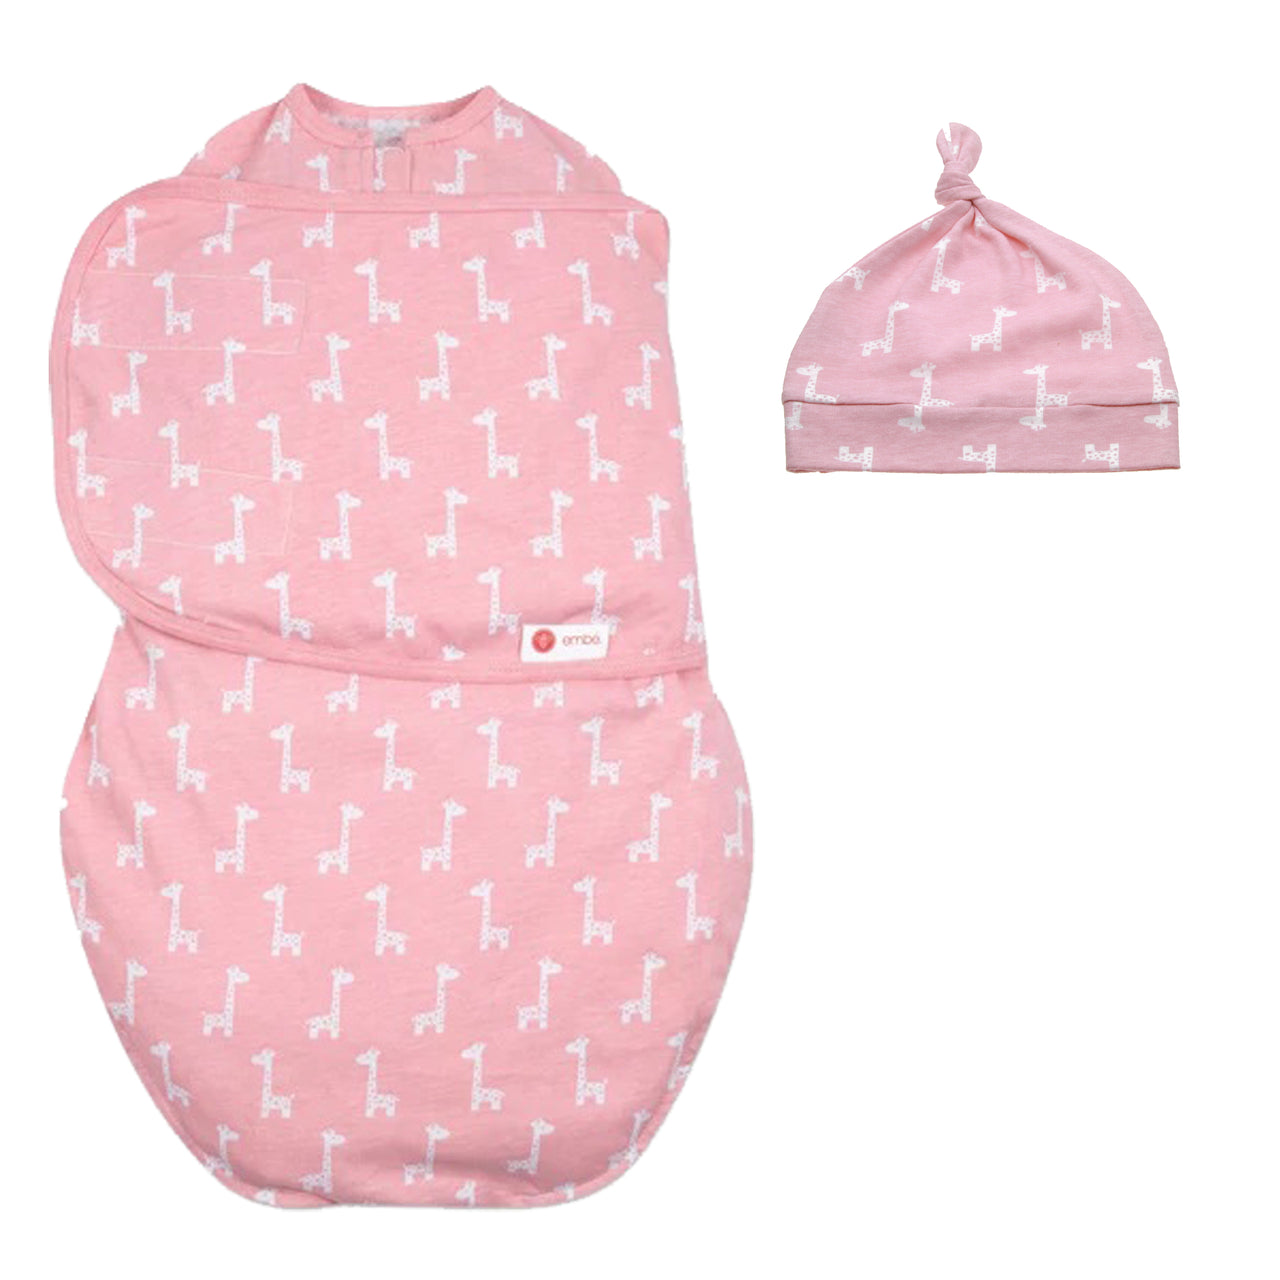 Kids & Babies - Hat And Starter Swaddle Original Bundle (Pink Giraffes)